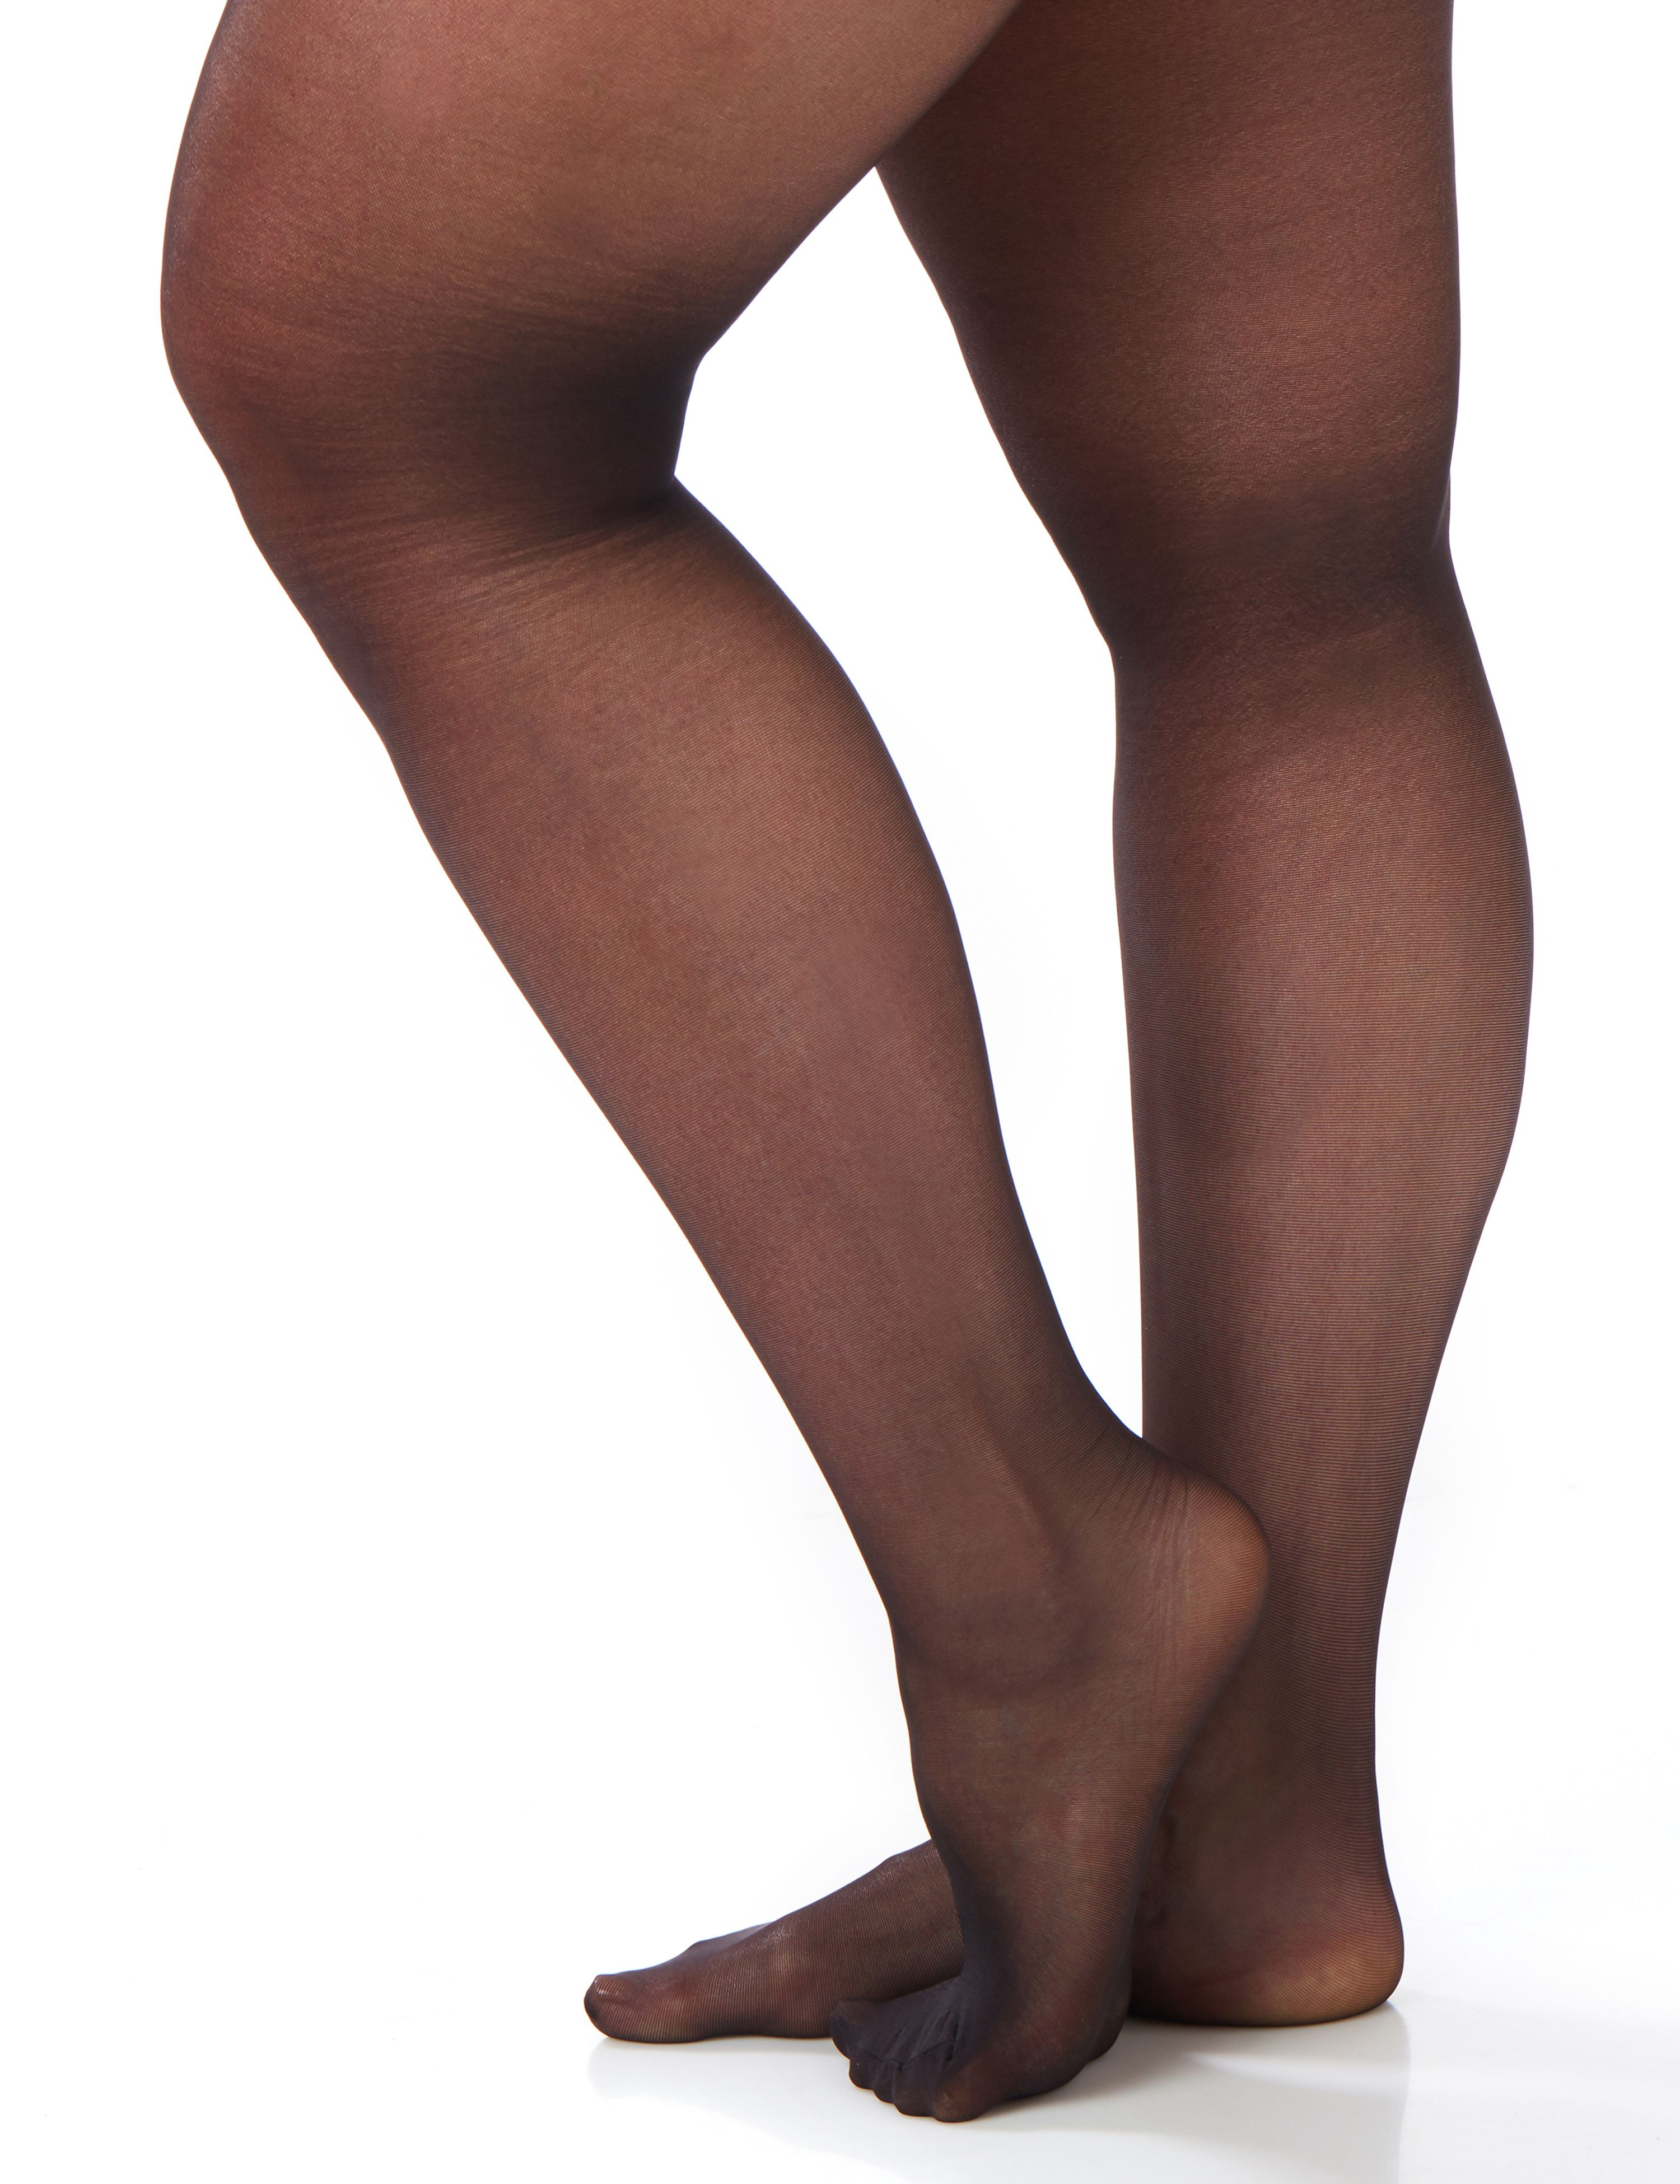 Light Support Pantyhose Light Support Pantyhose MP-300104788